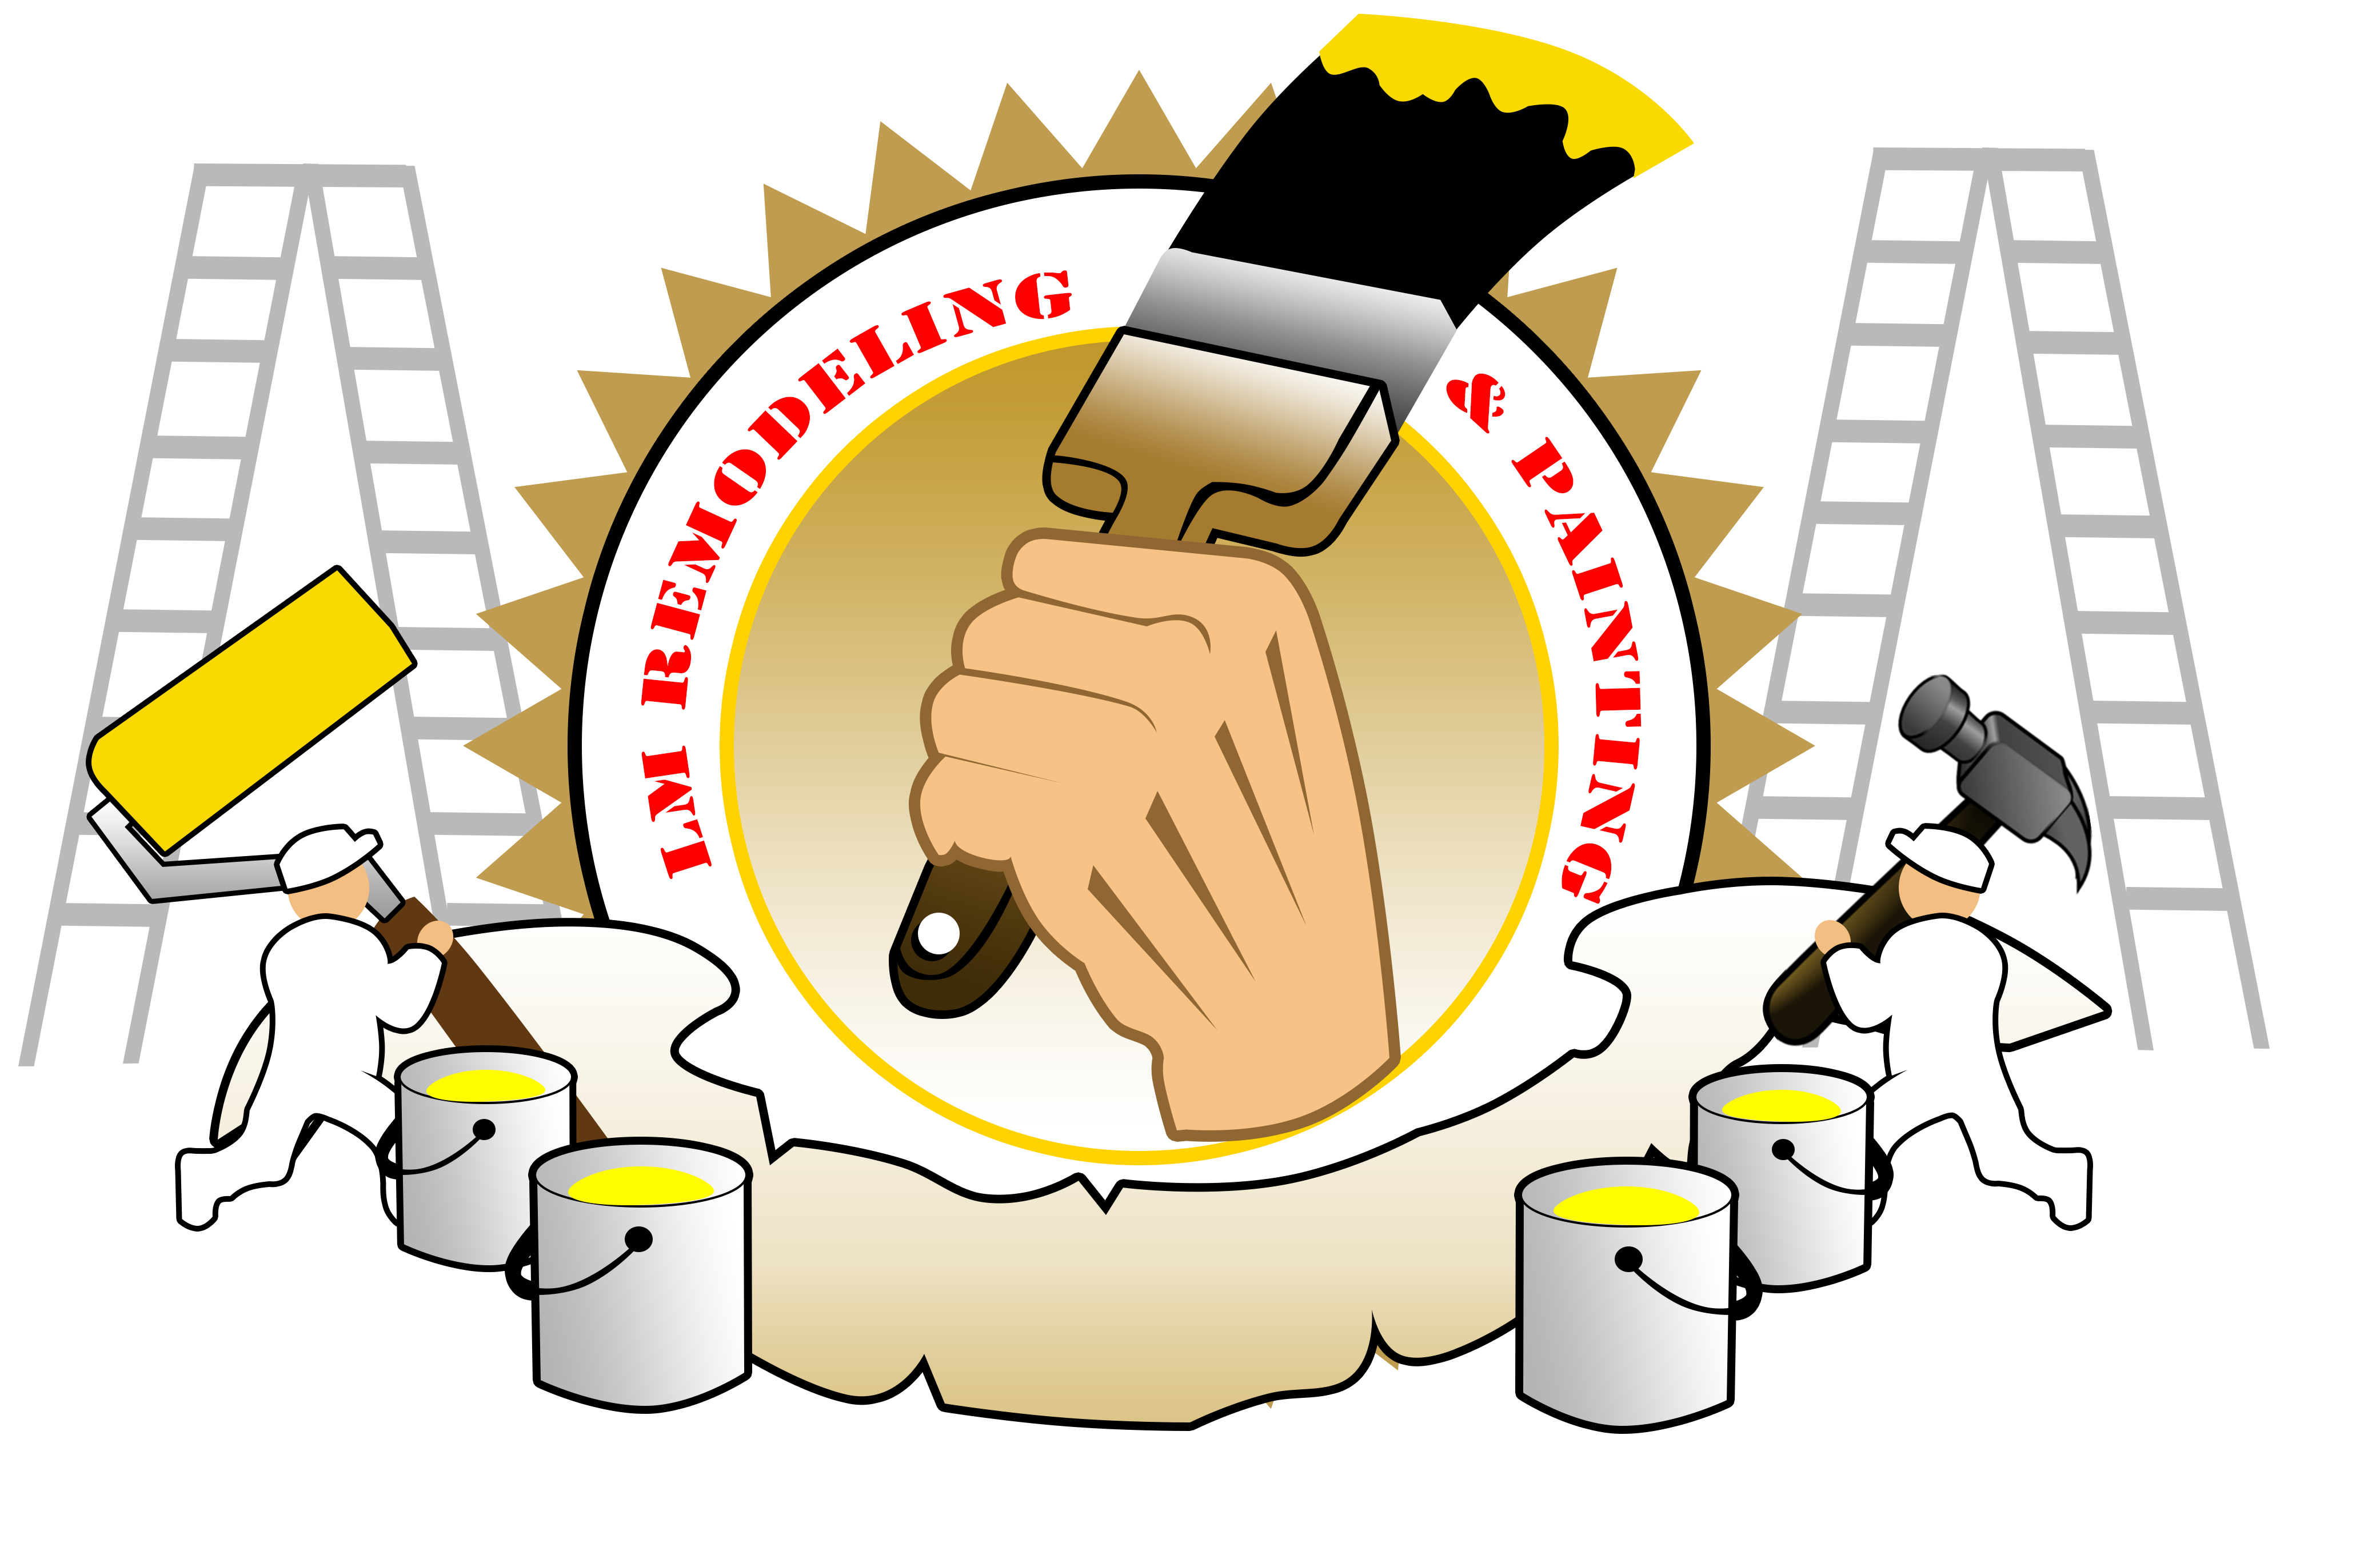 Remodeling clip art clipart images gallery for free download.